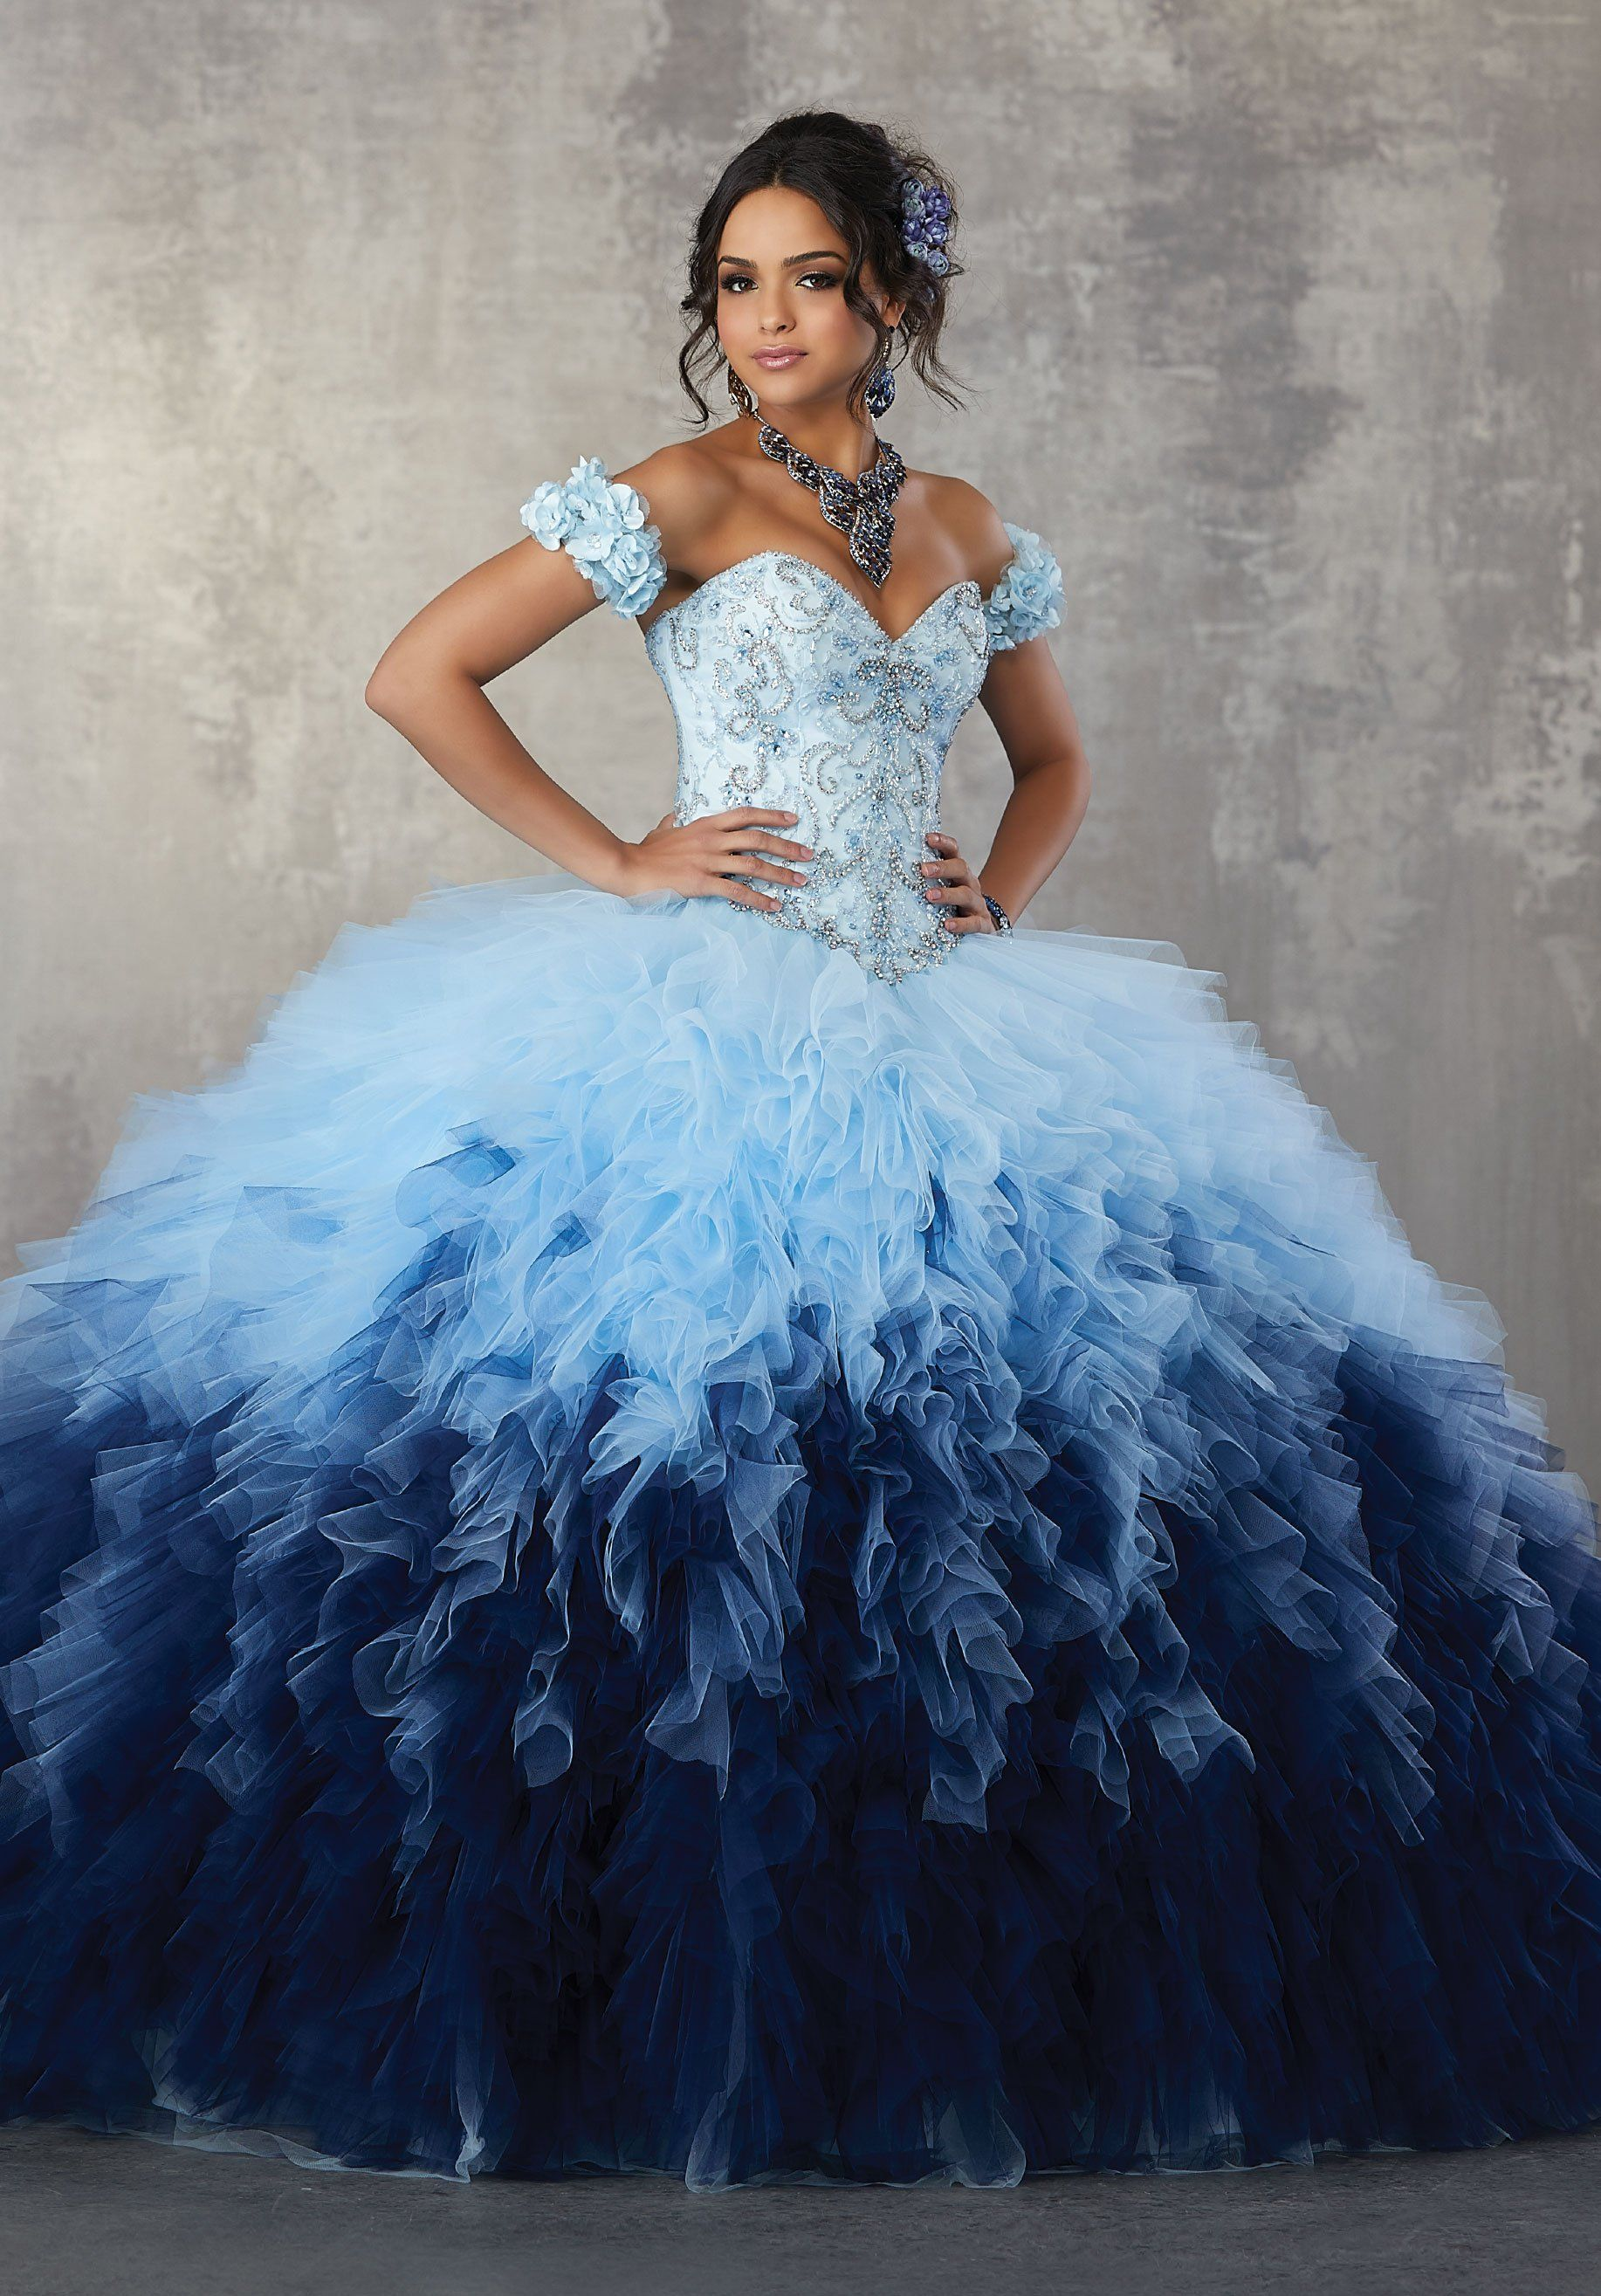 1291f6b0200 Strapless Ombre Quinceanera Dress by Mori Lee Vizcaya 89161 ...